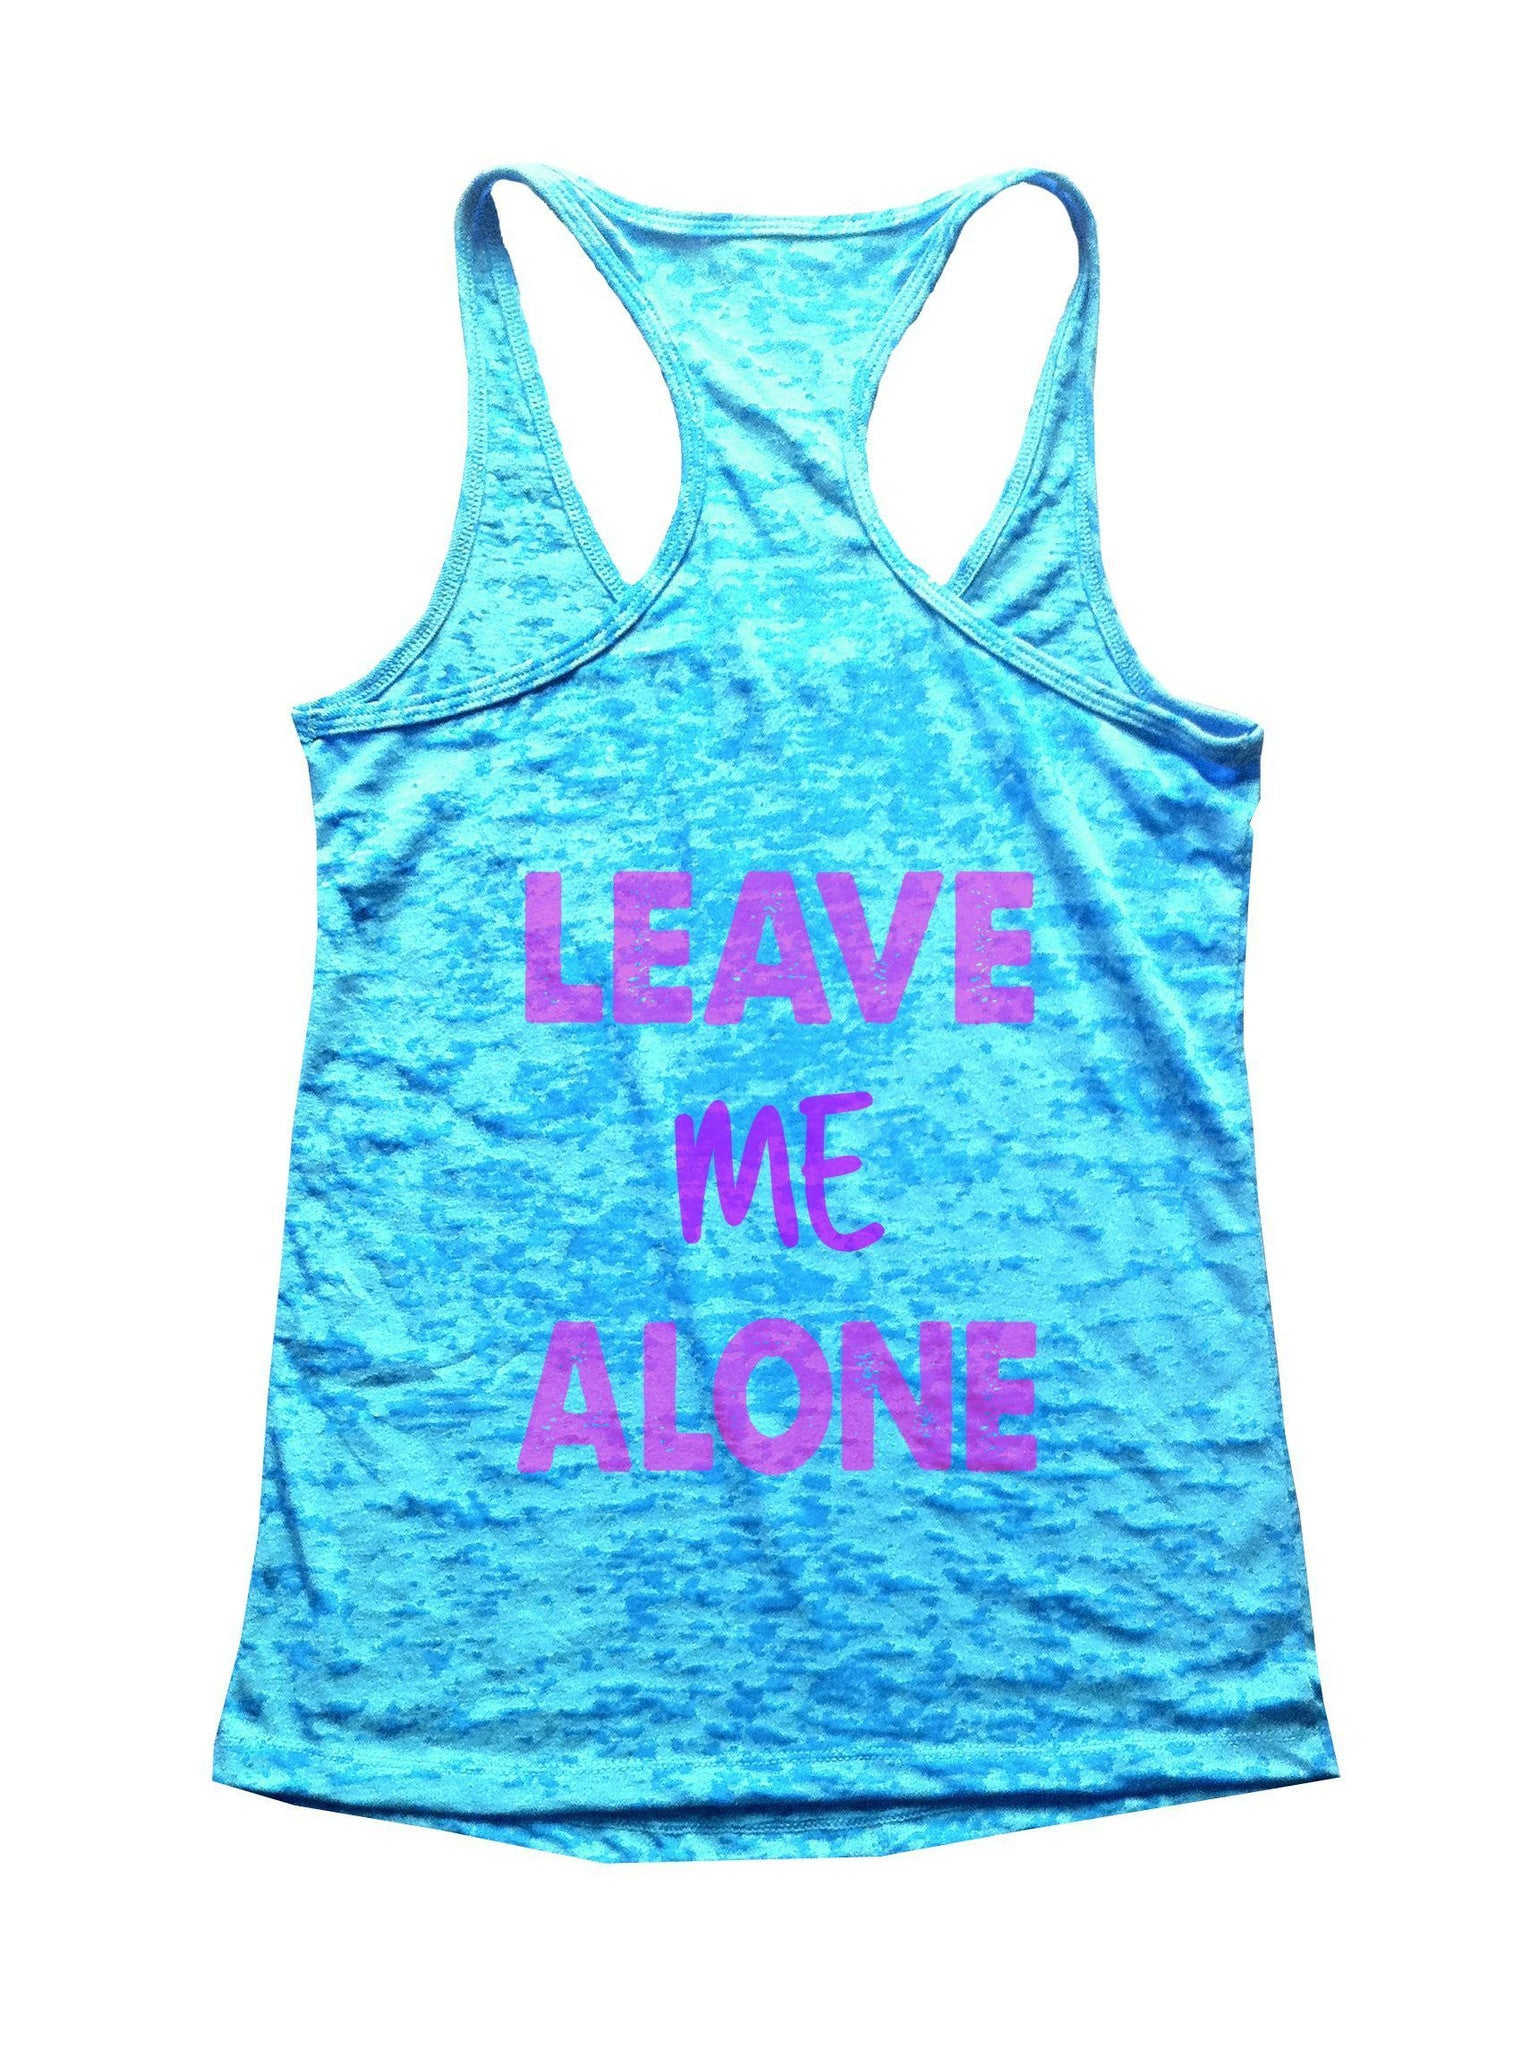 Leave Me Alone Burnout Tank Top By BurnoutTankTops.com - B24 - Funny Shirts Tank Tops Burnouts and Triblends  - 4